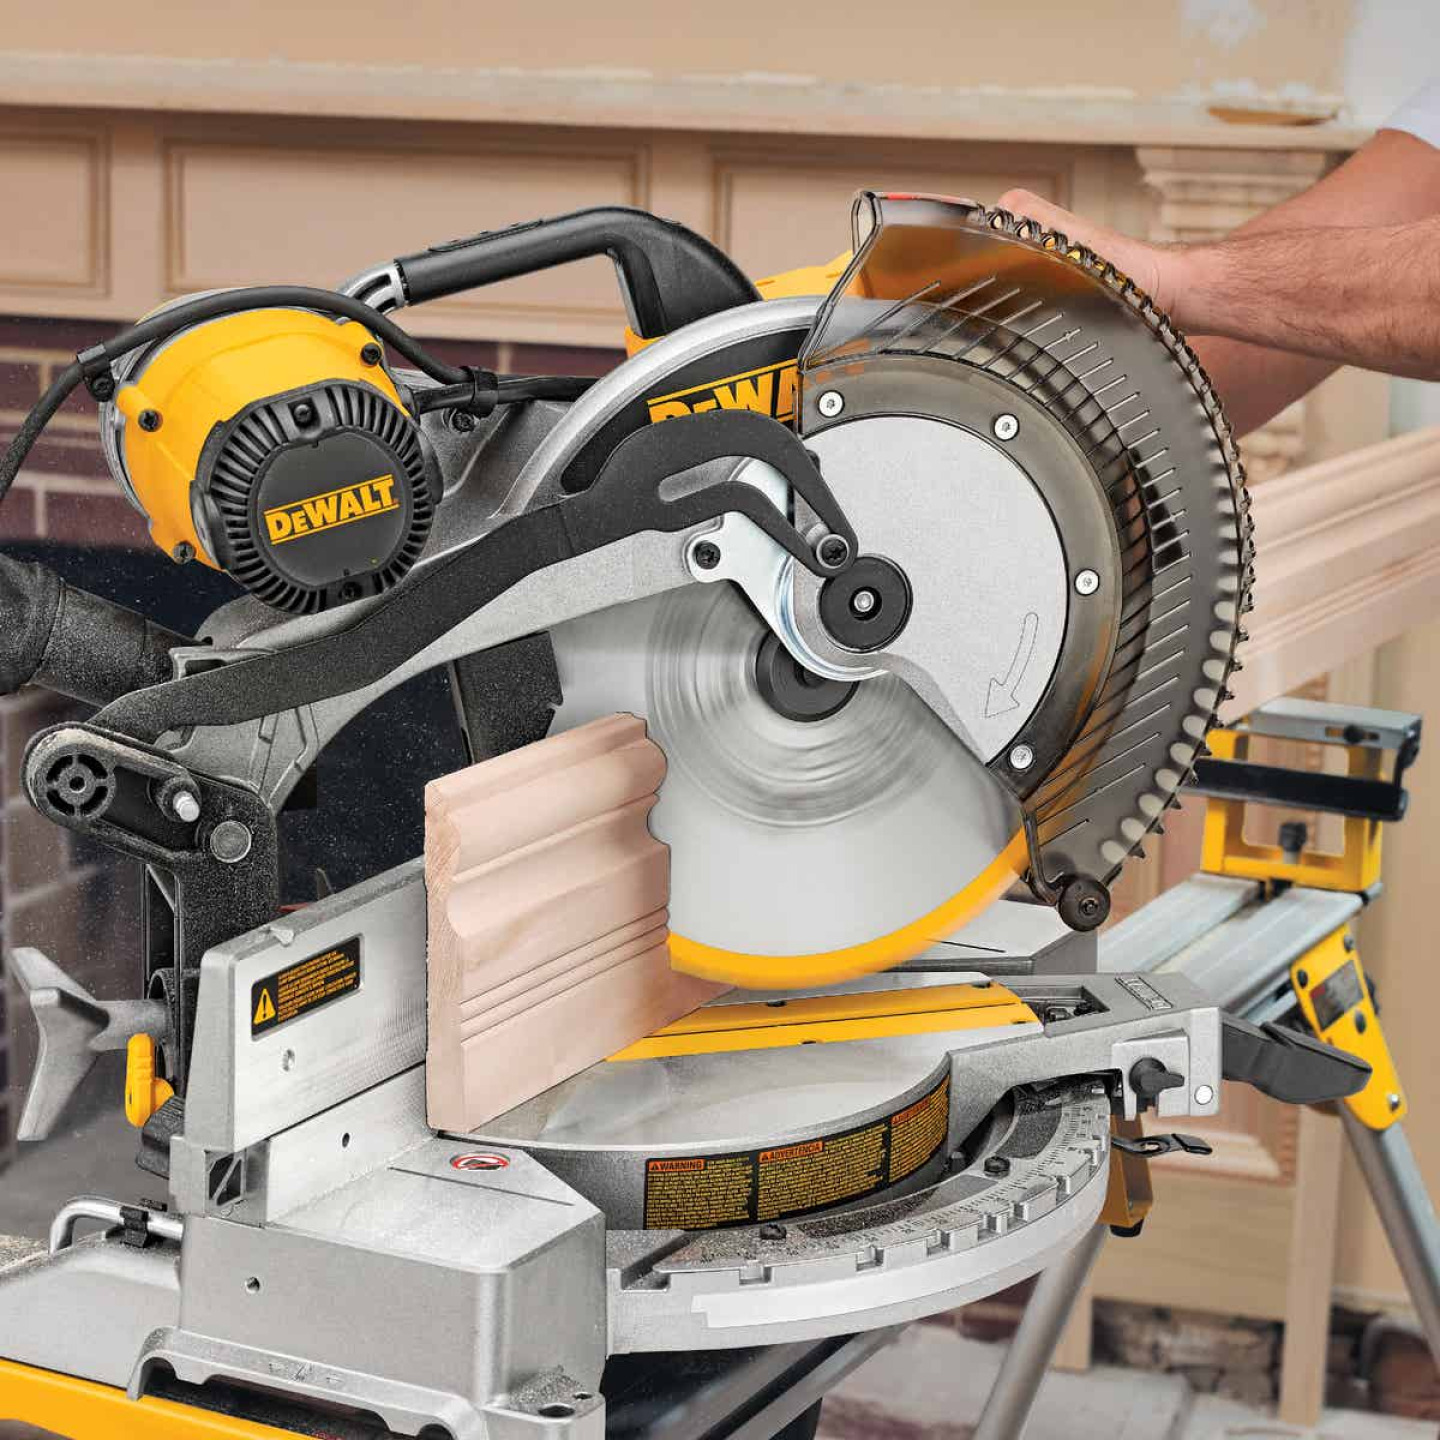 DeWalt 12 In. 15-Amp Dual-Bevel Compound Miter Saw Image 5